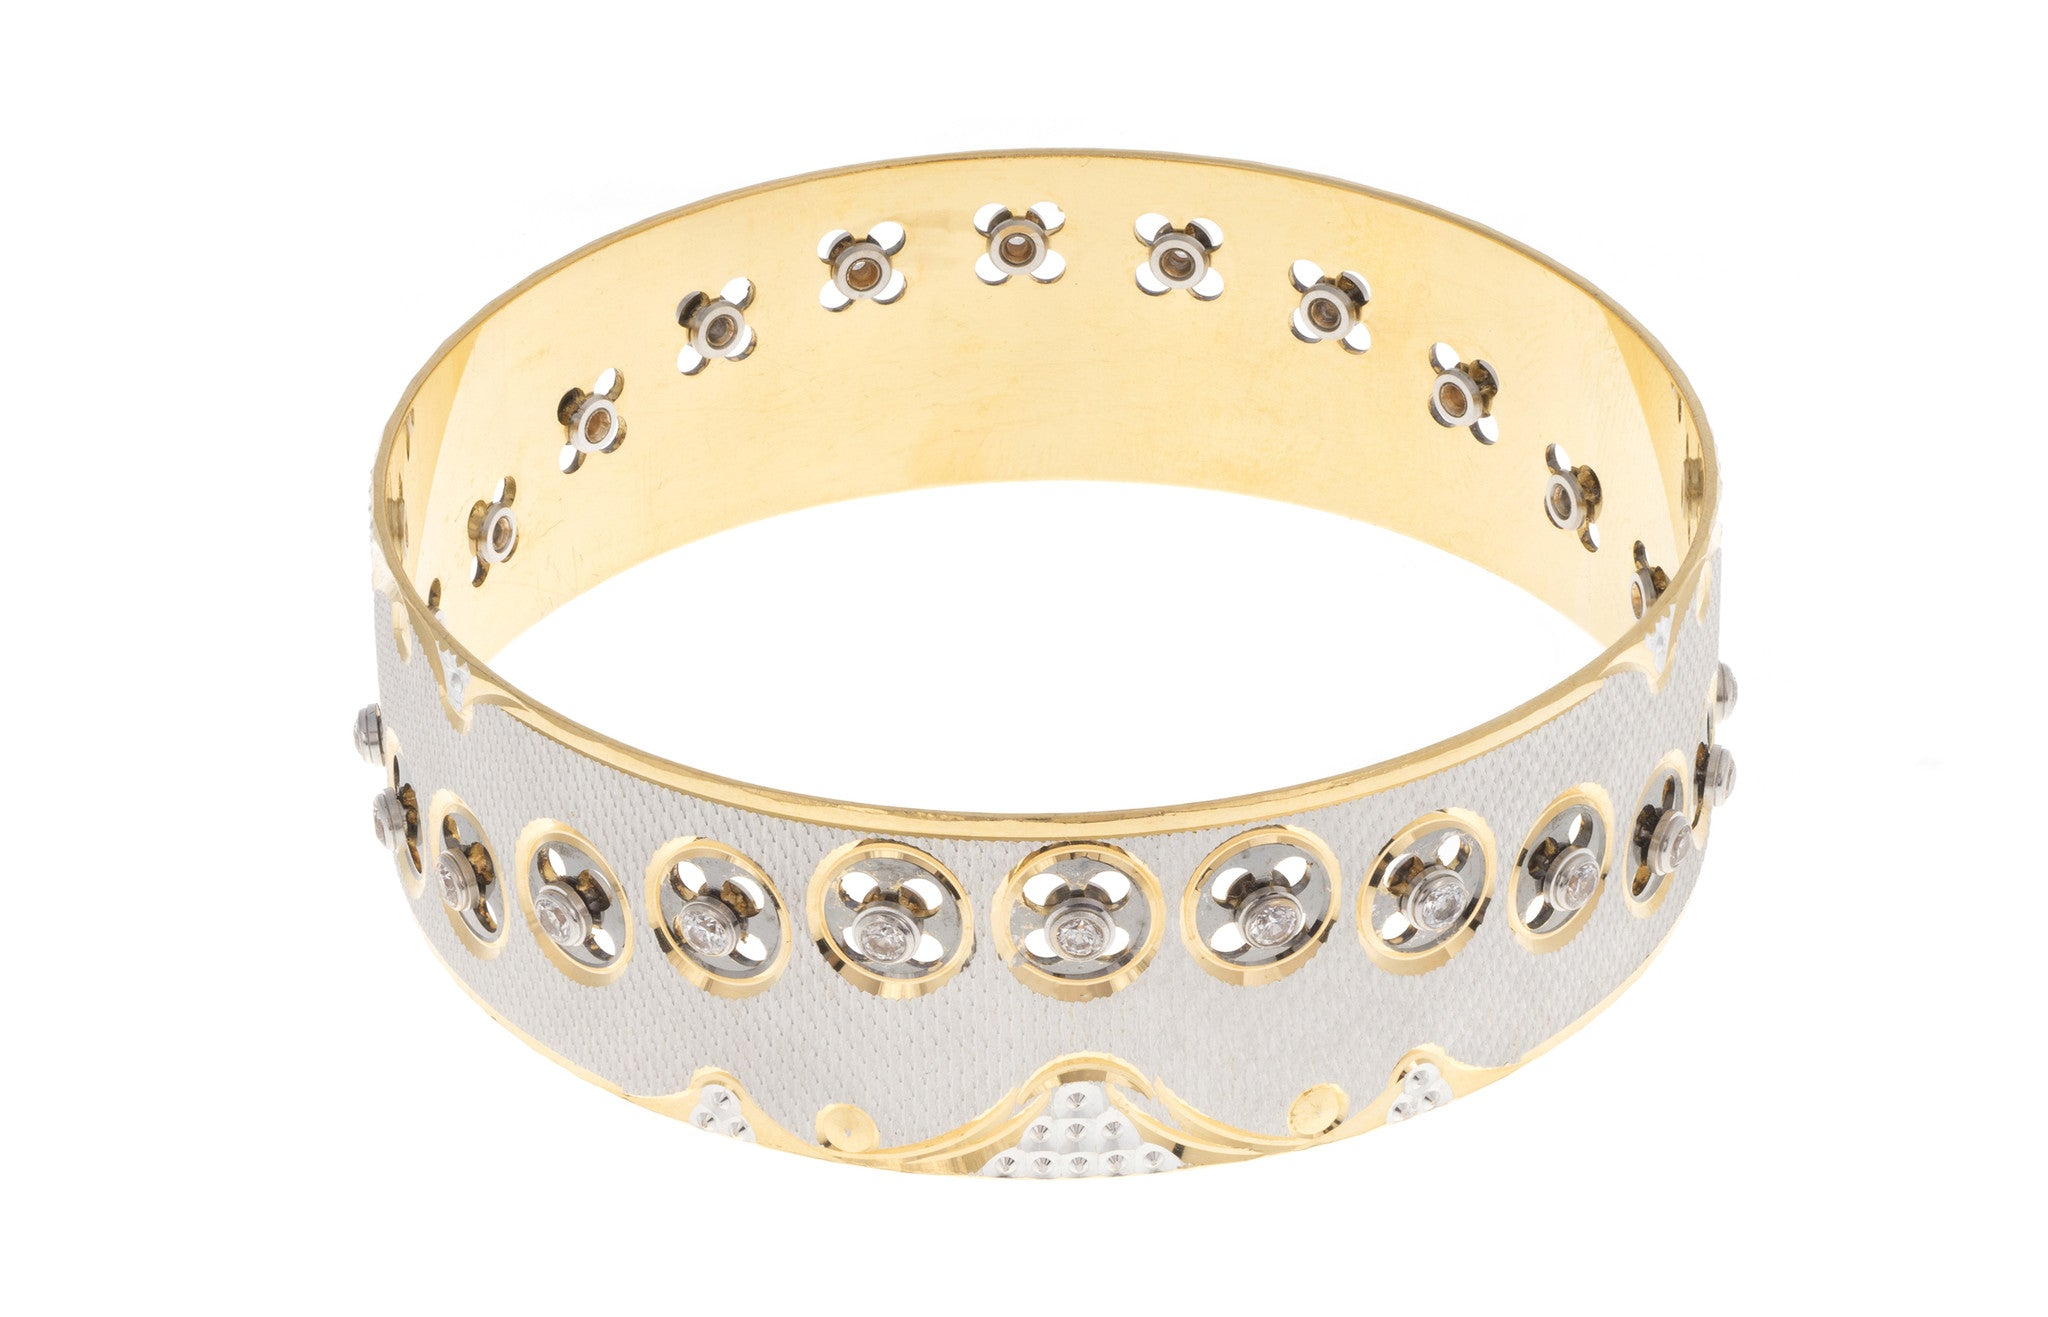 22ct Yellow Gold & Cubic Zirconia Bangle (G1986), Minar Jewellers - 2